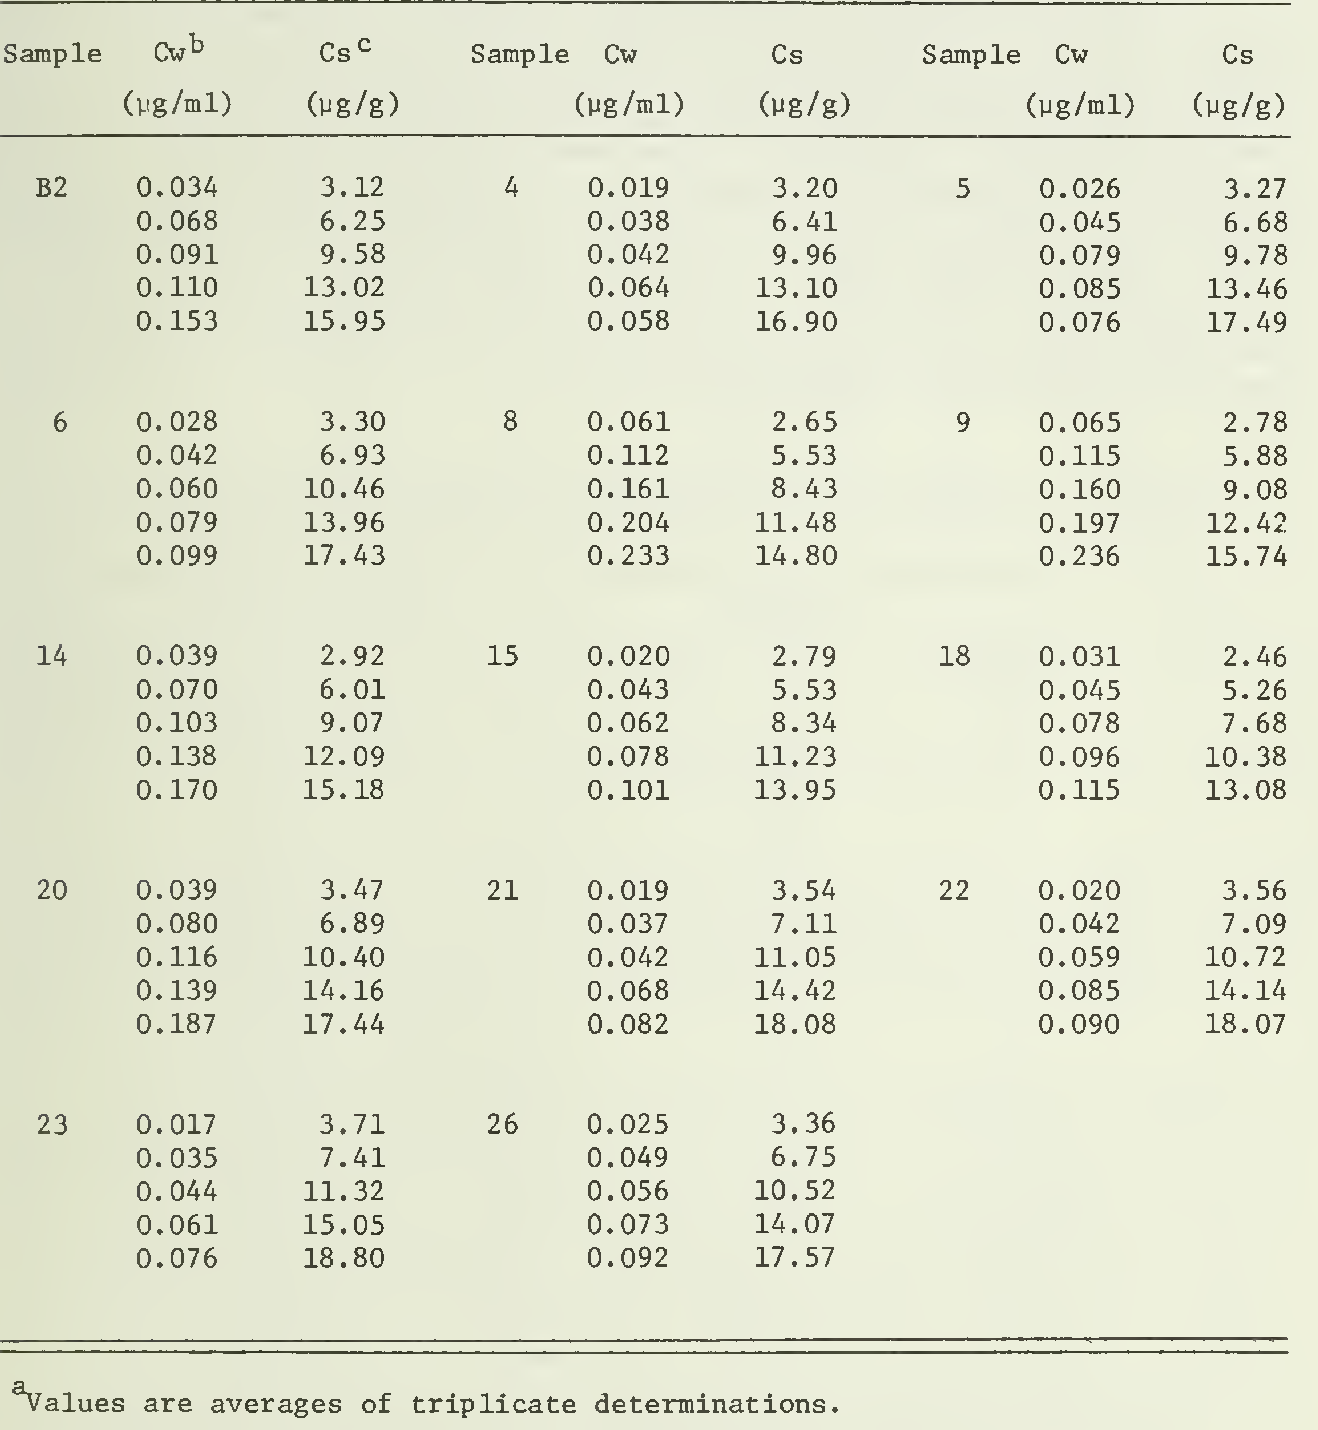 table 4.31